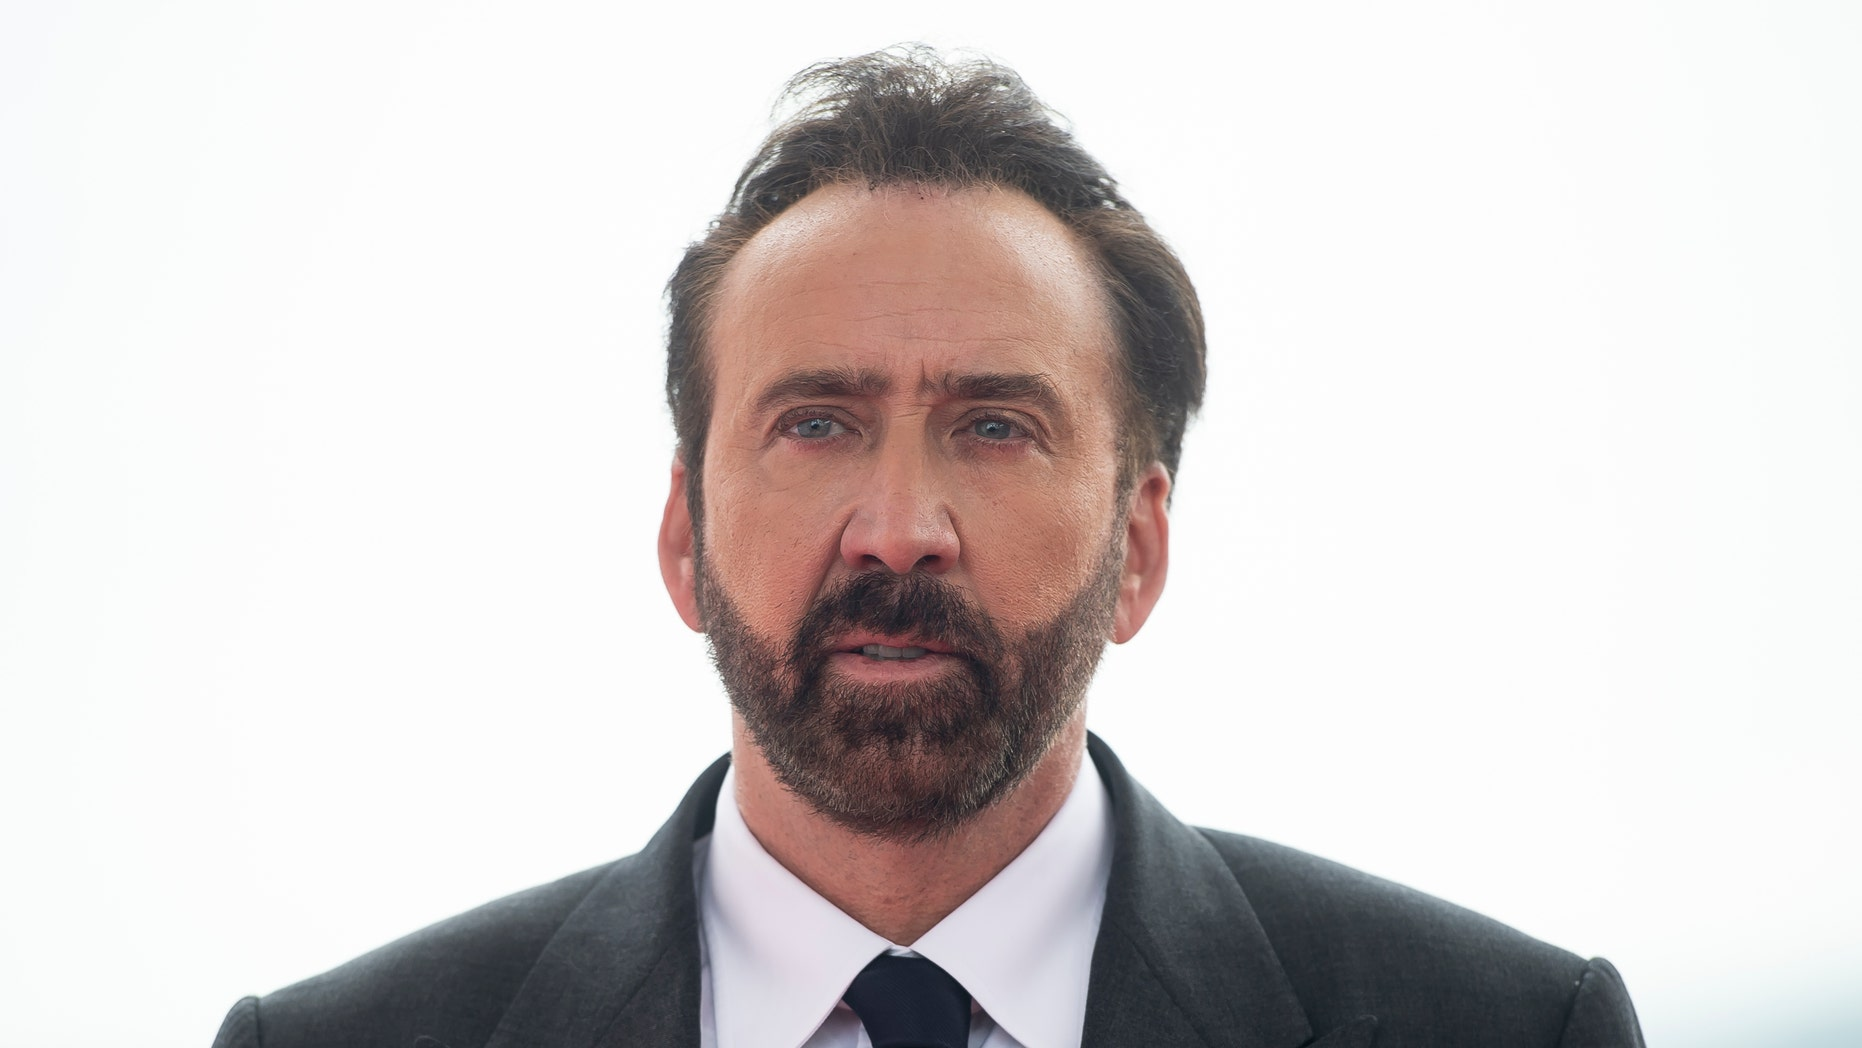 Nicolas Cage 'seeks annulment after four-day marriage'